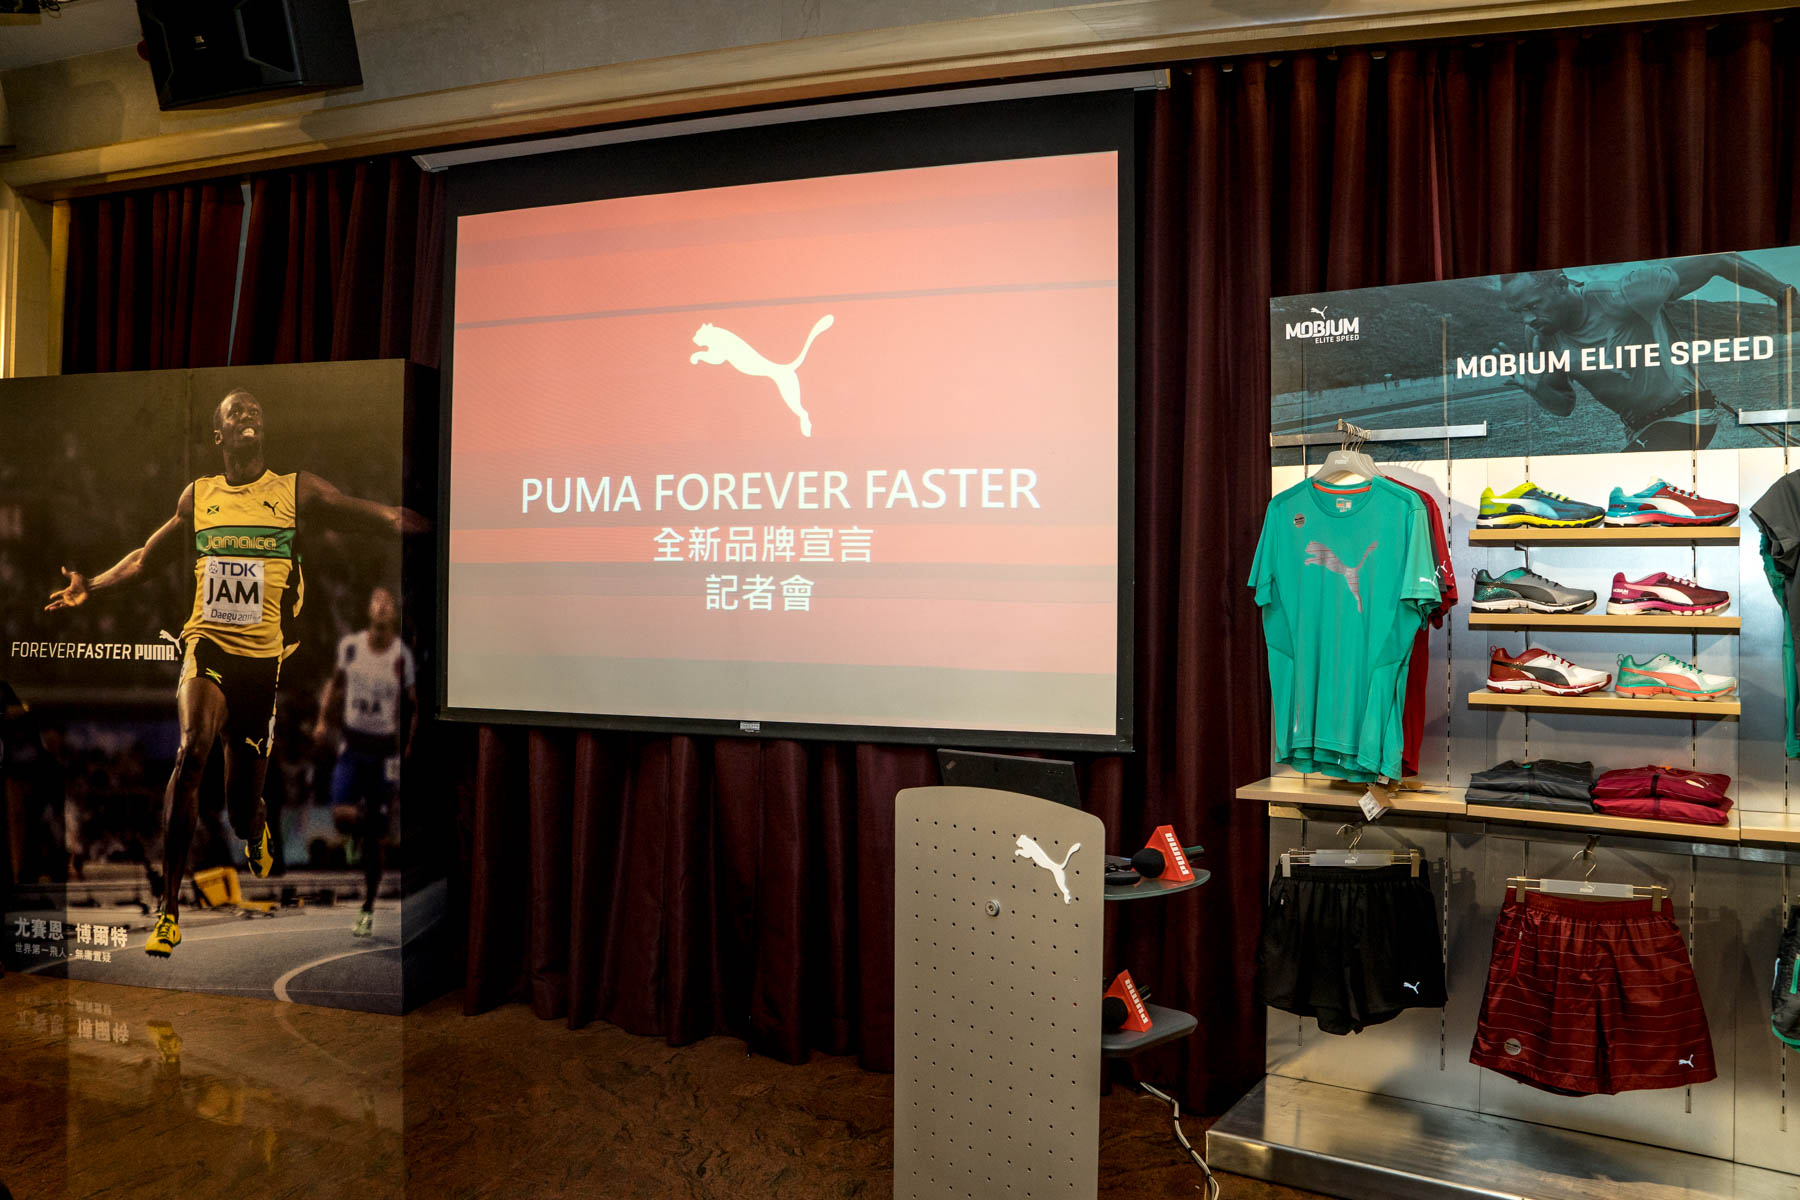 puma-forever faster press conference-1